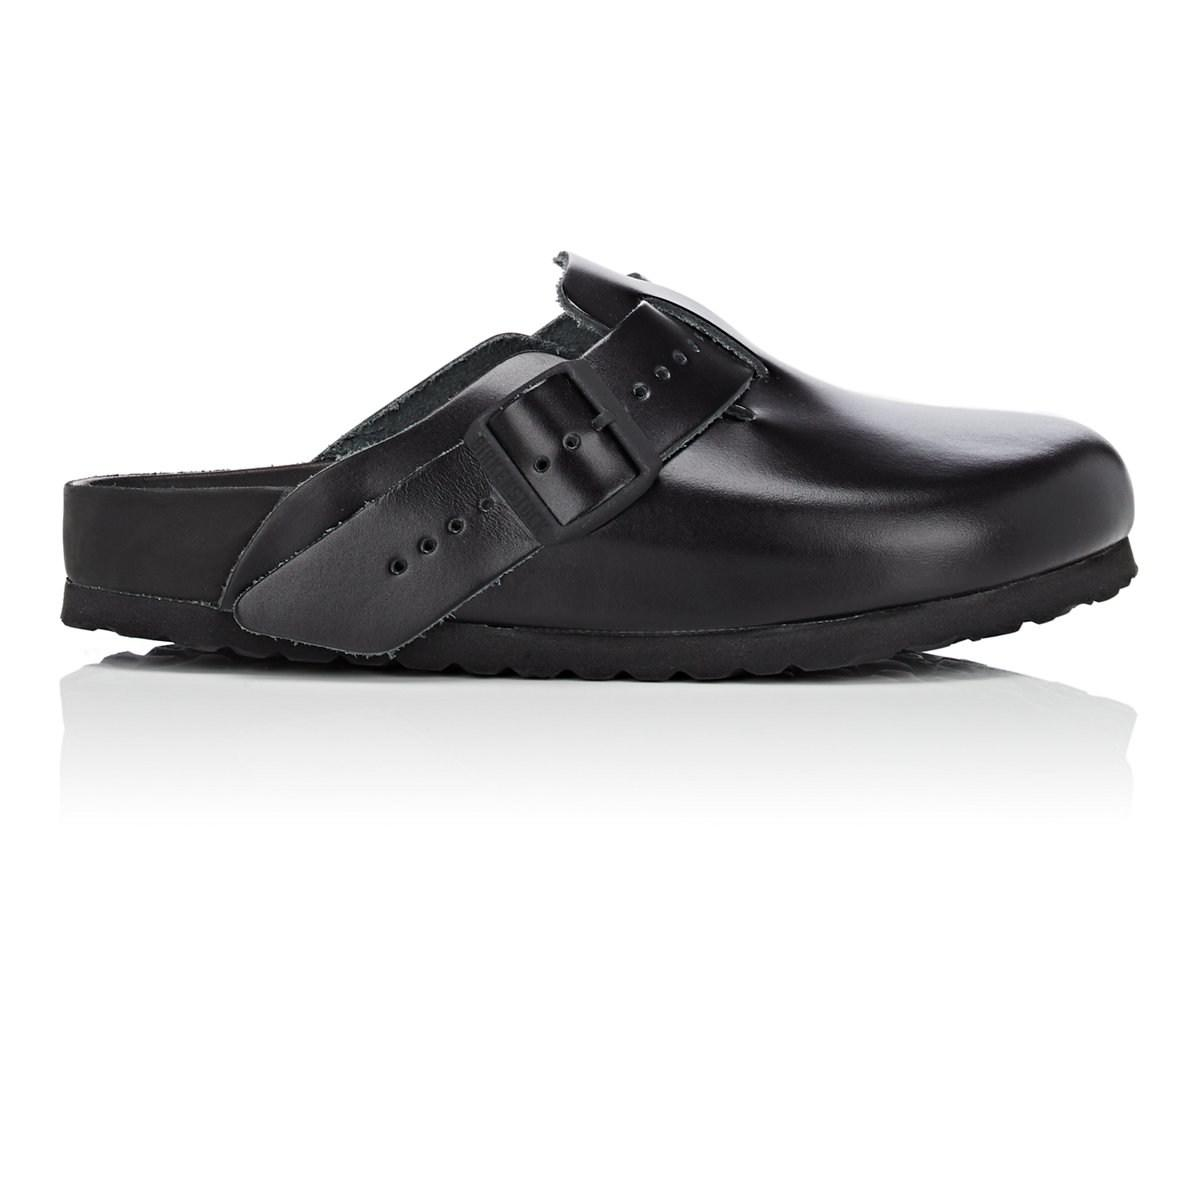 cheap sale with mastercard Rick Owens Women's Boston Exquisite Leather Clogs latest collections cheap online pay with visa cheap online oUMChw8